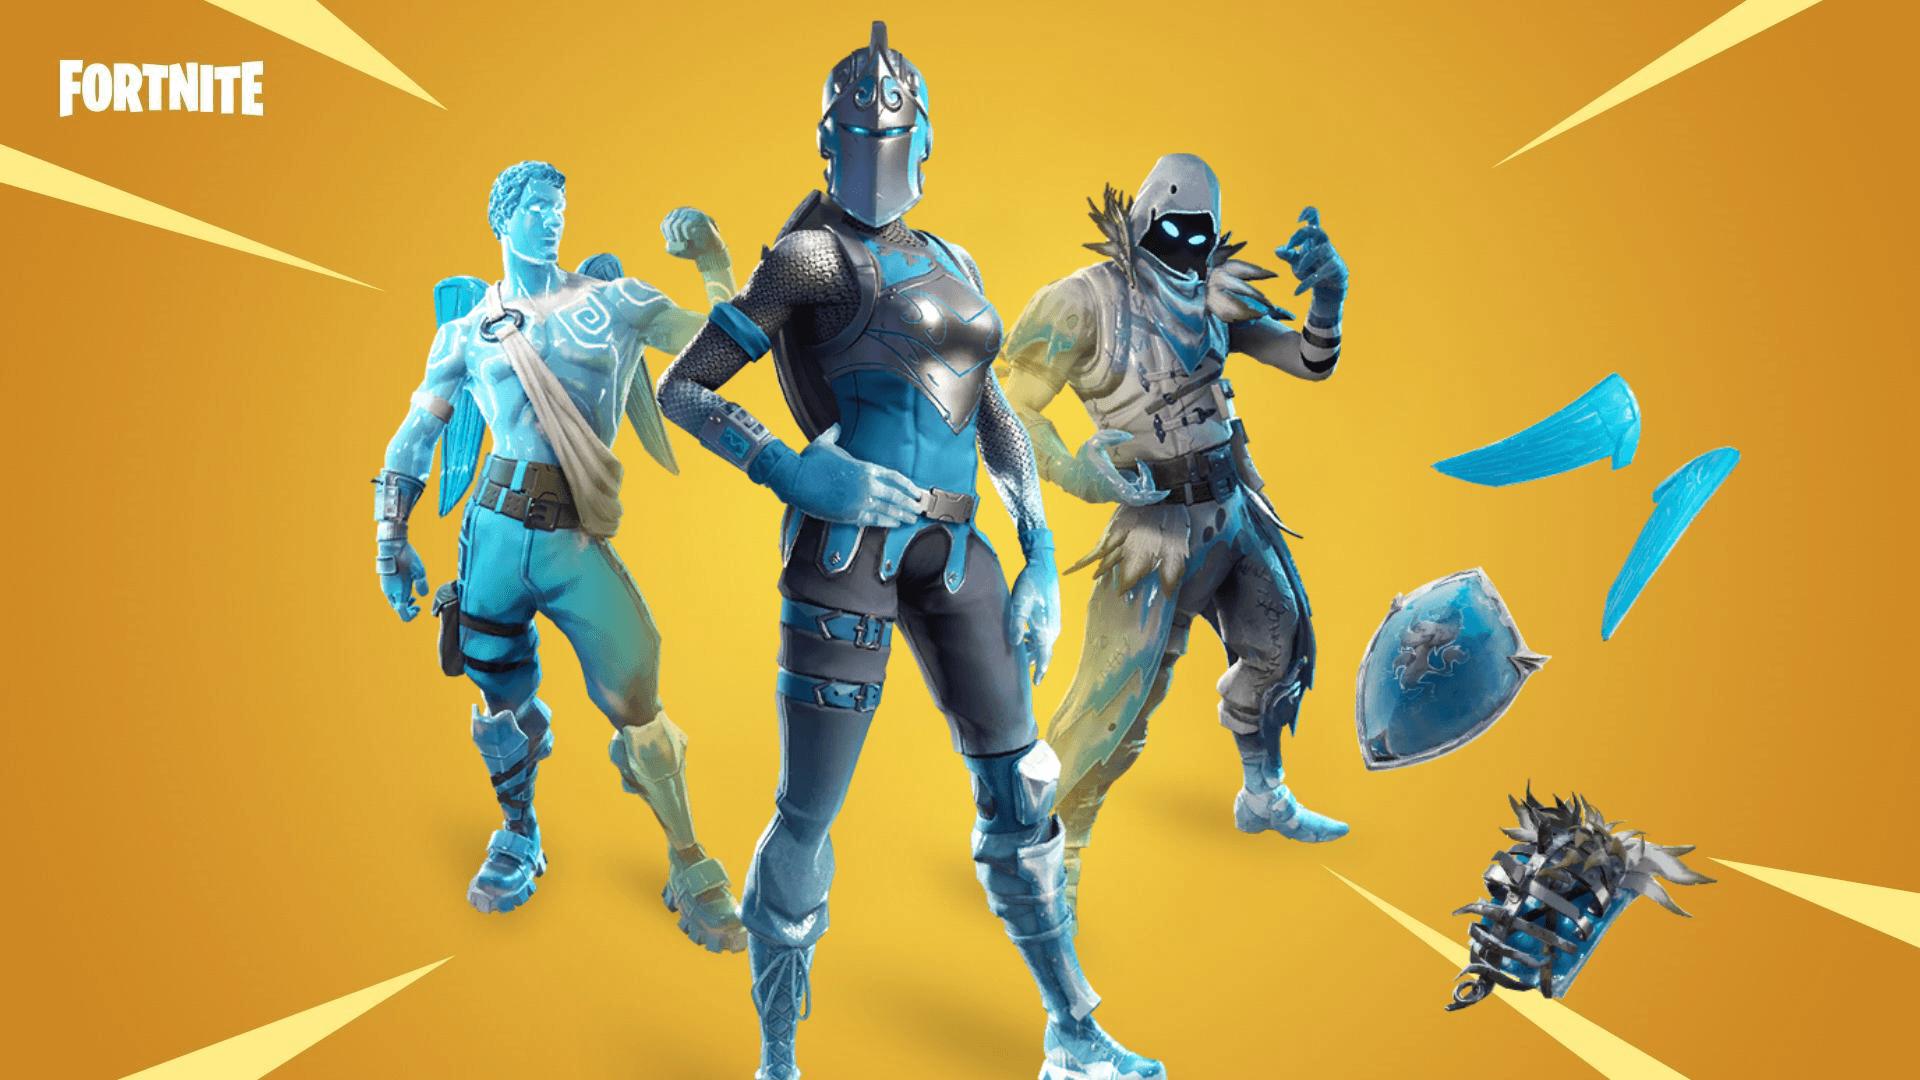 Fortnite Frozen Legends Bundle may cost real money